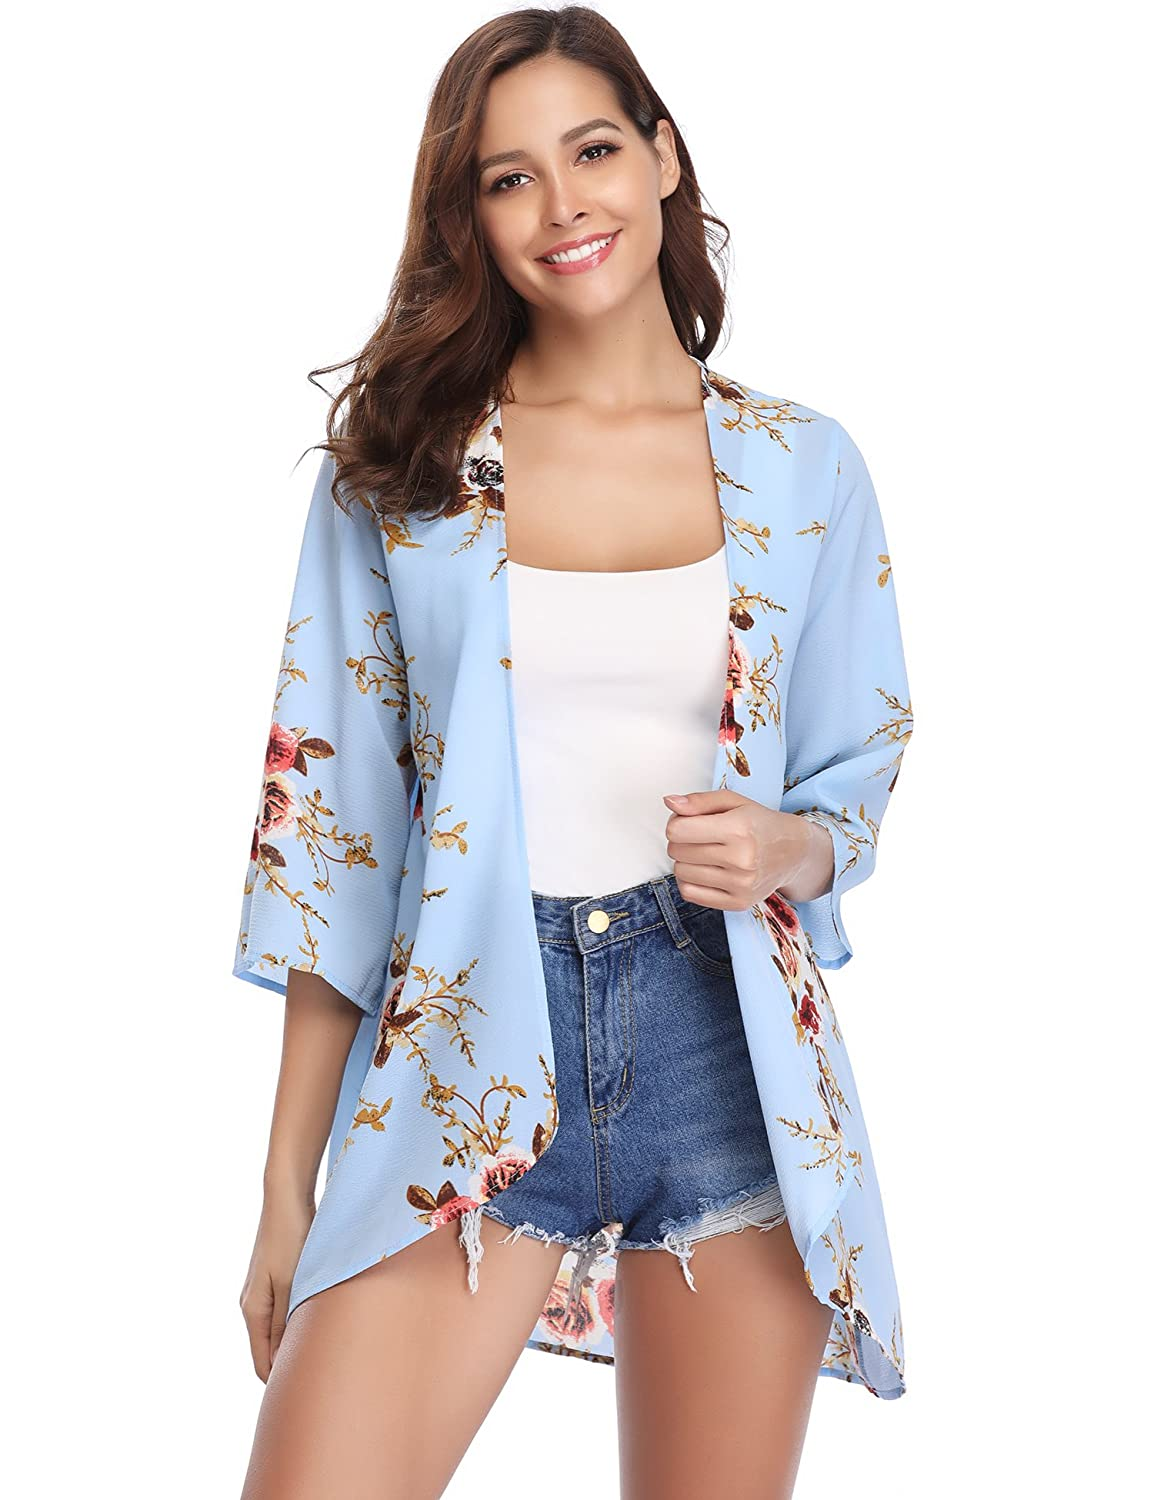 Abollria Women's Beach Cover up Chiffon Floral Boho Summer Cardigan Kimono Blouse